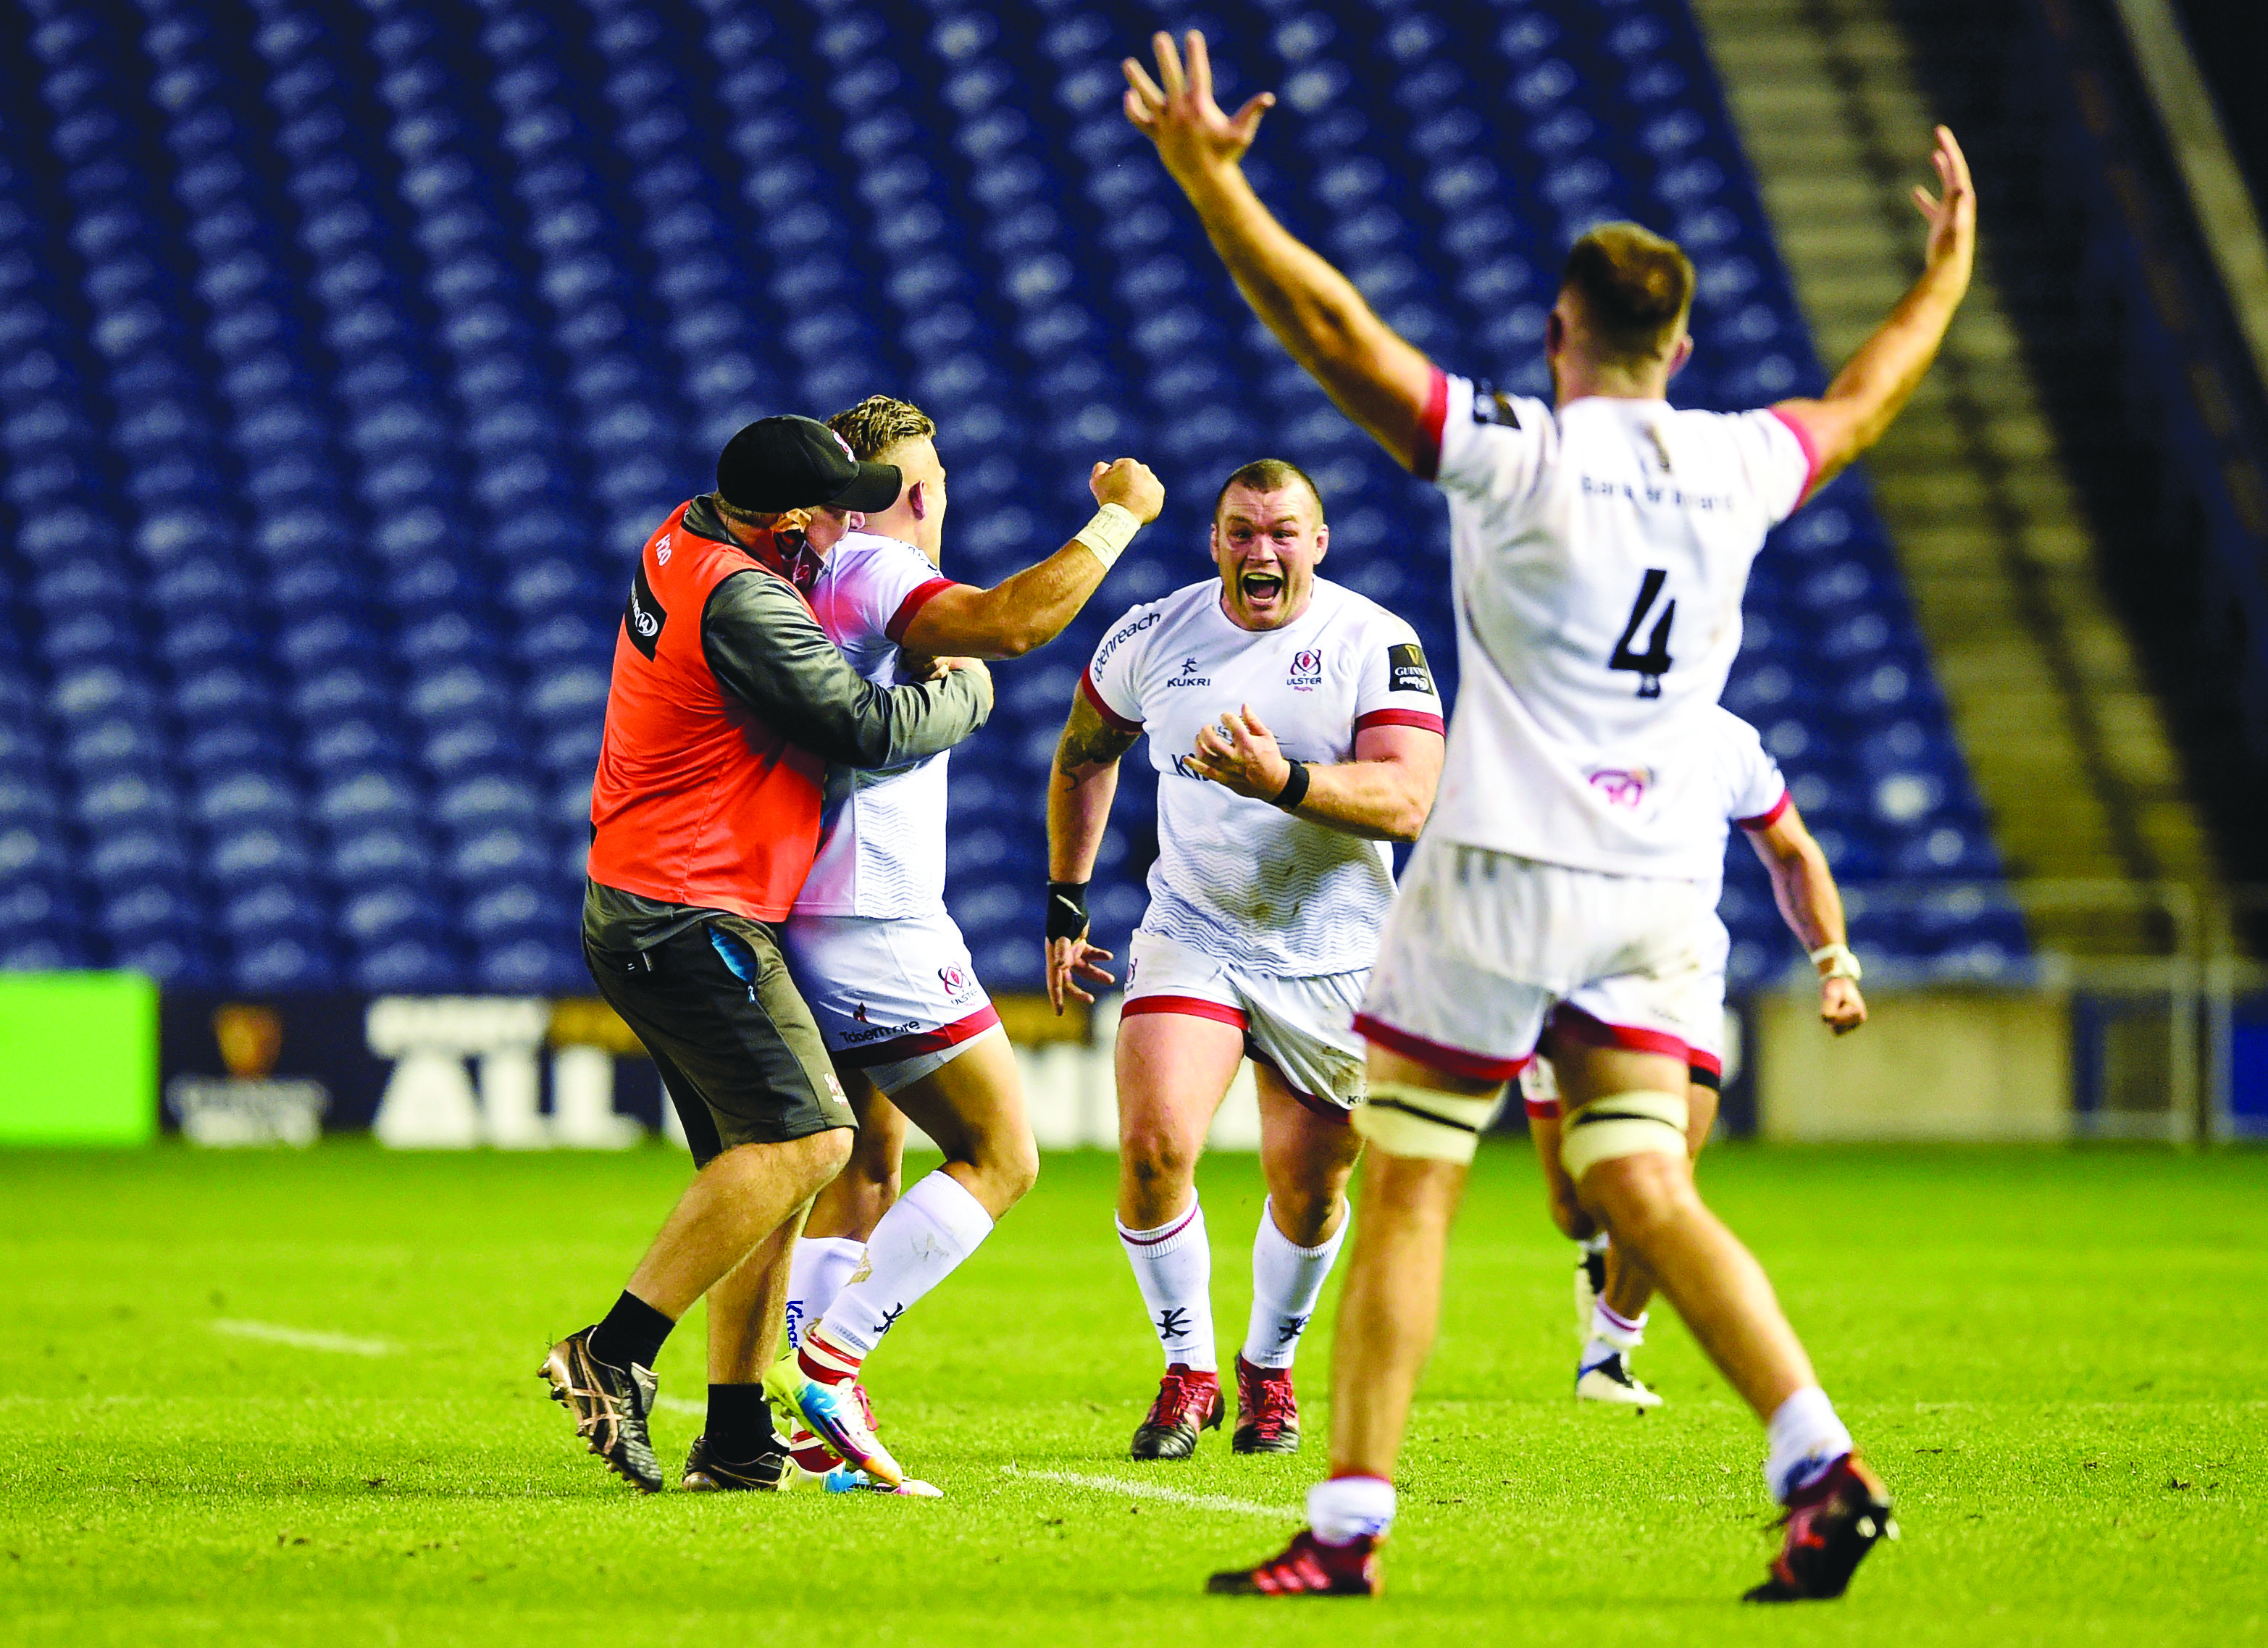 Alan O\'Connor and Jack McGrath celebrate with Ian Madigan after he converted the final kick of the game to win last week's semi-final in Edinburgh